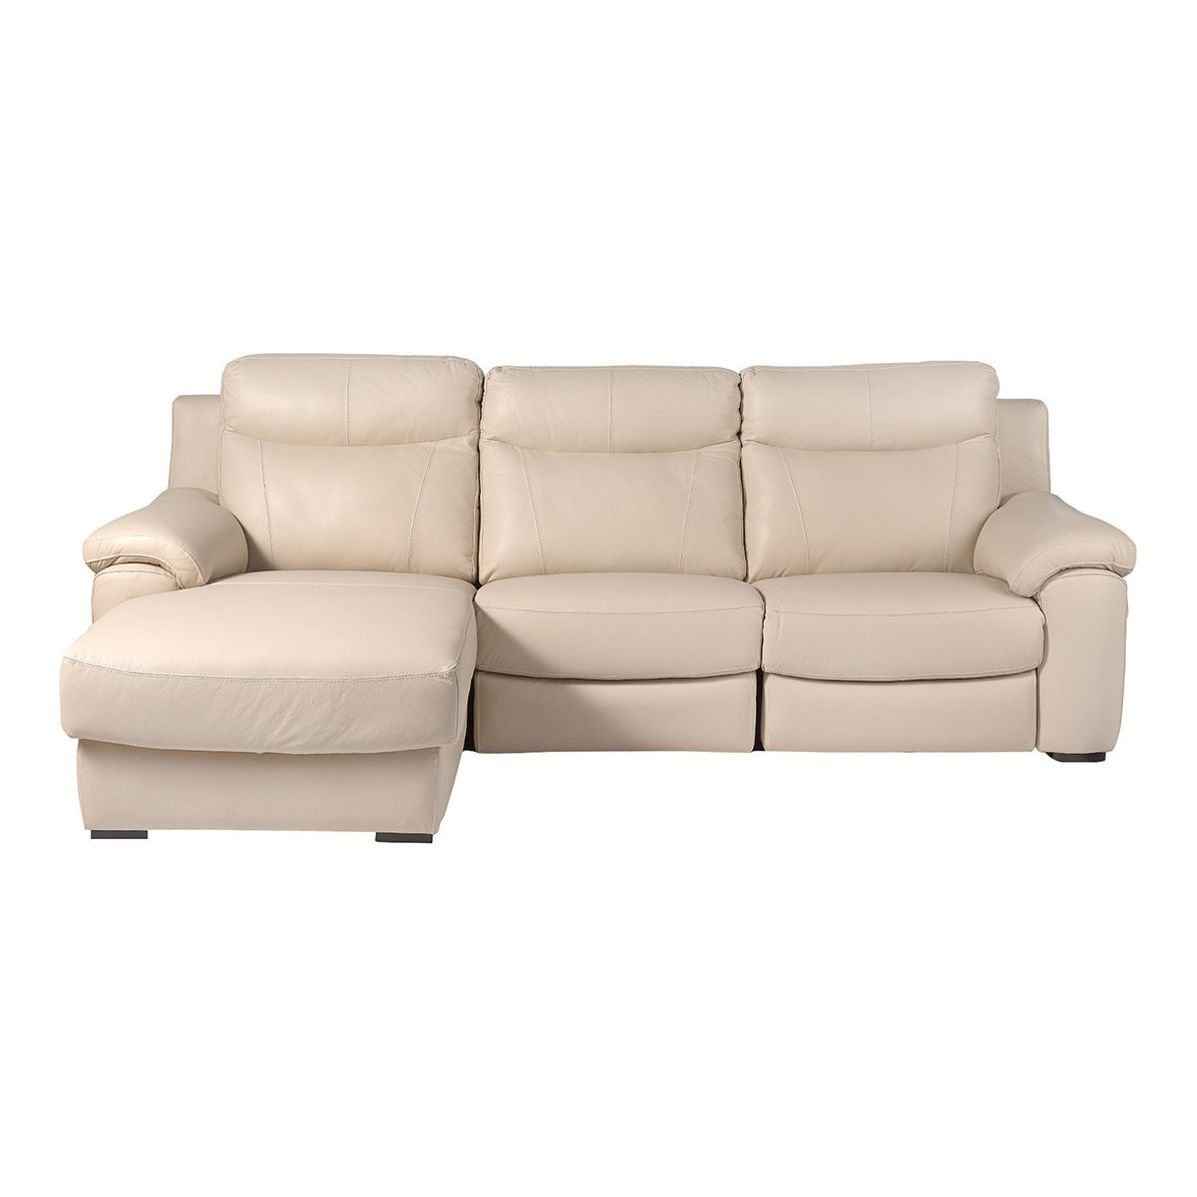 Sofa en ingles for Chaise longue sofa cama